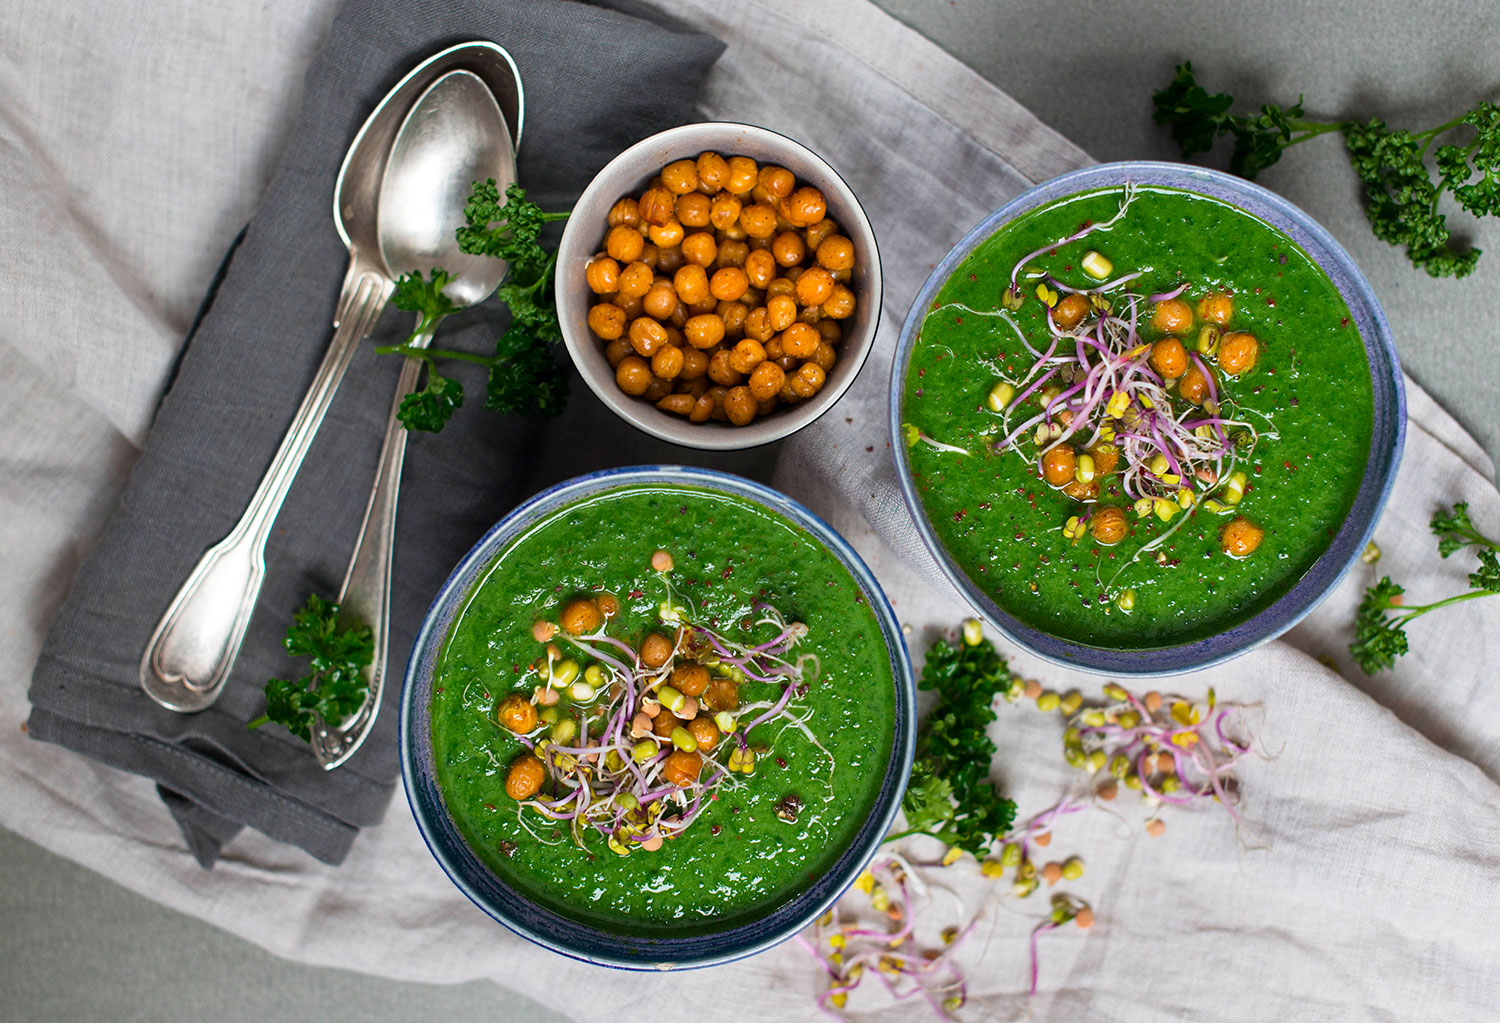 Vegan-spinach-parsley-soup-Florette-Lea-Lou-12